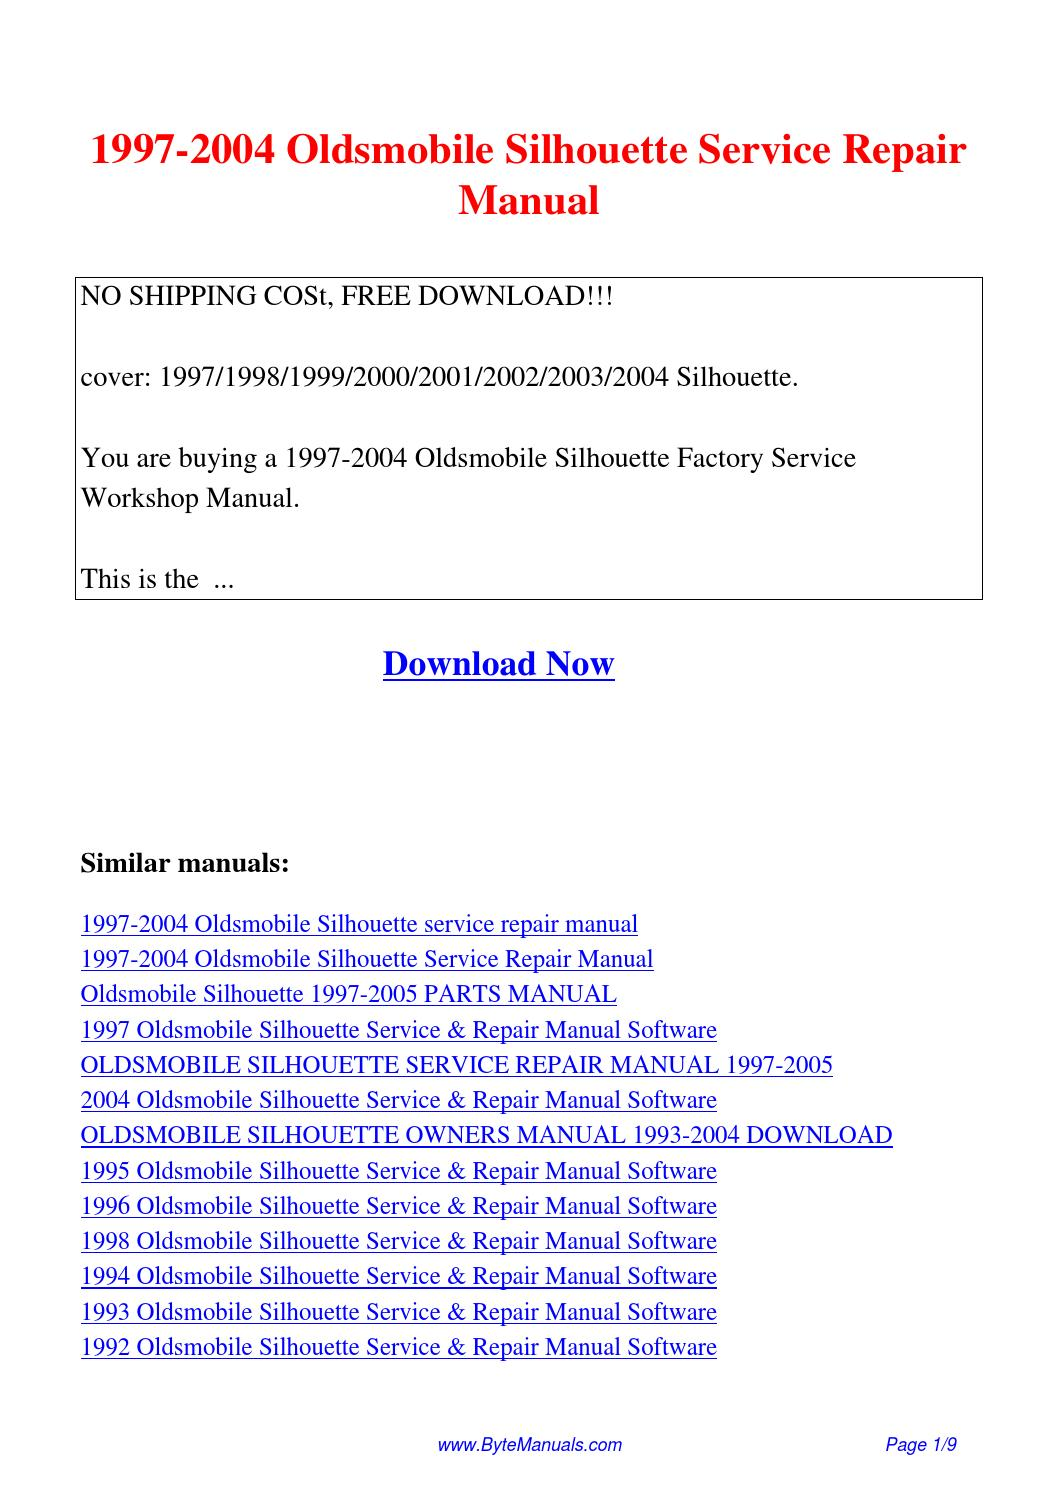 1997-2004 Oldsmobile Silhouette Service Repair Manual.pdf by Ging Tang -  issuu